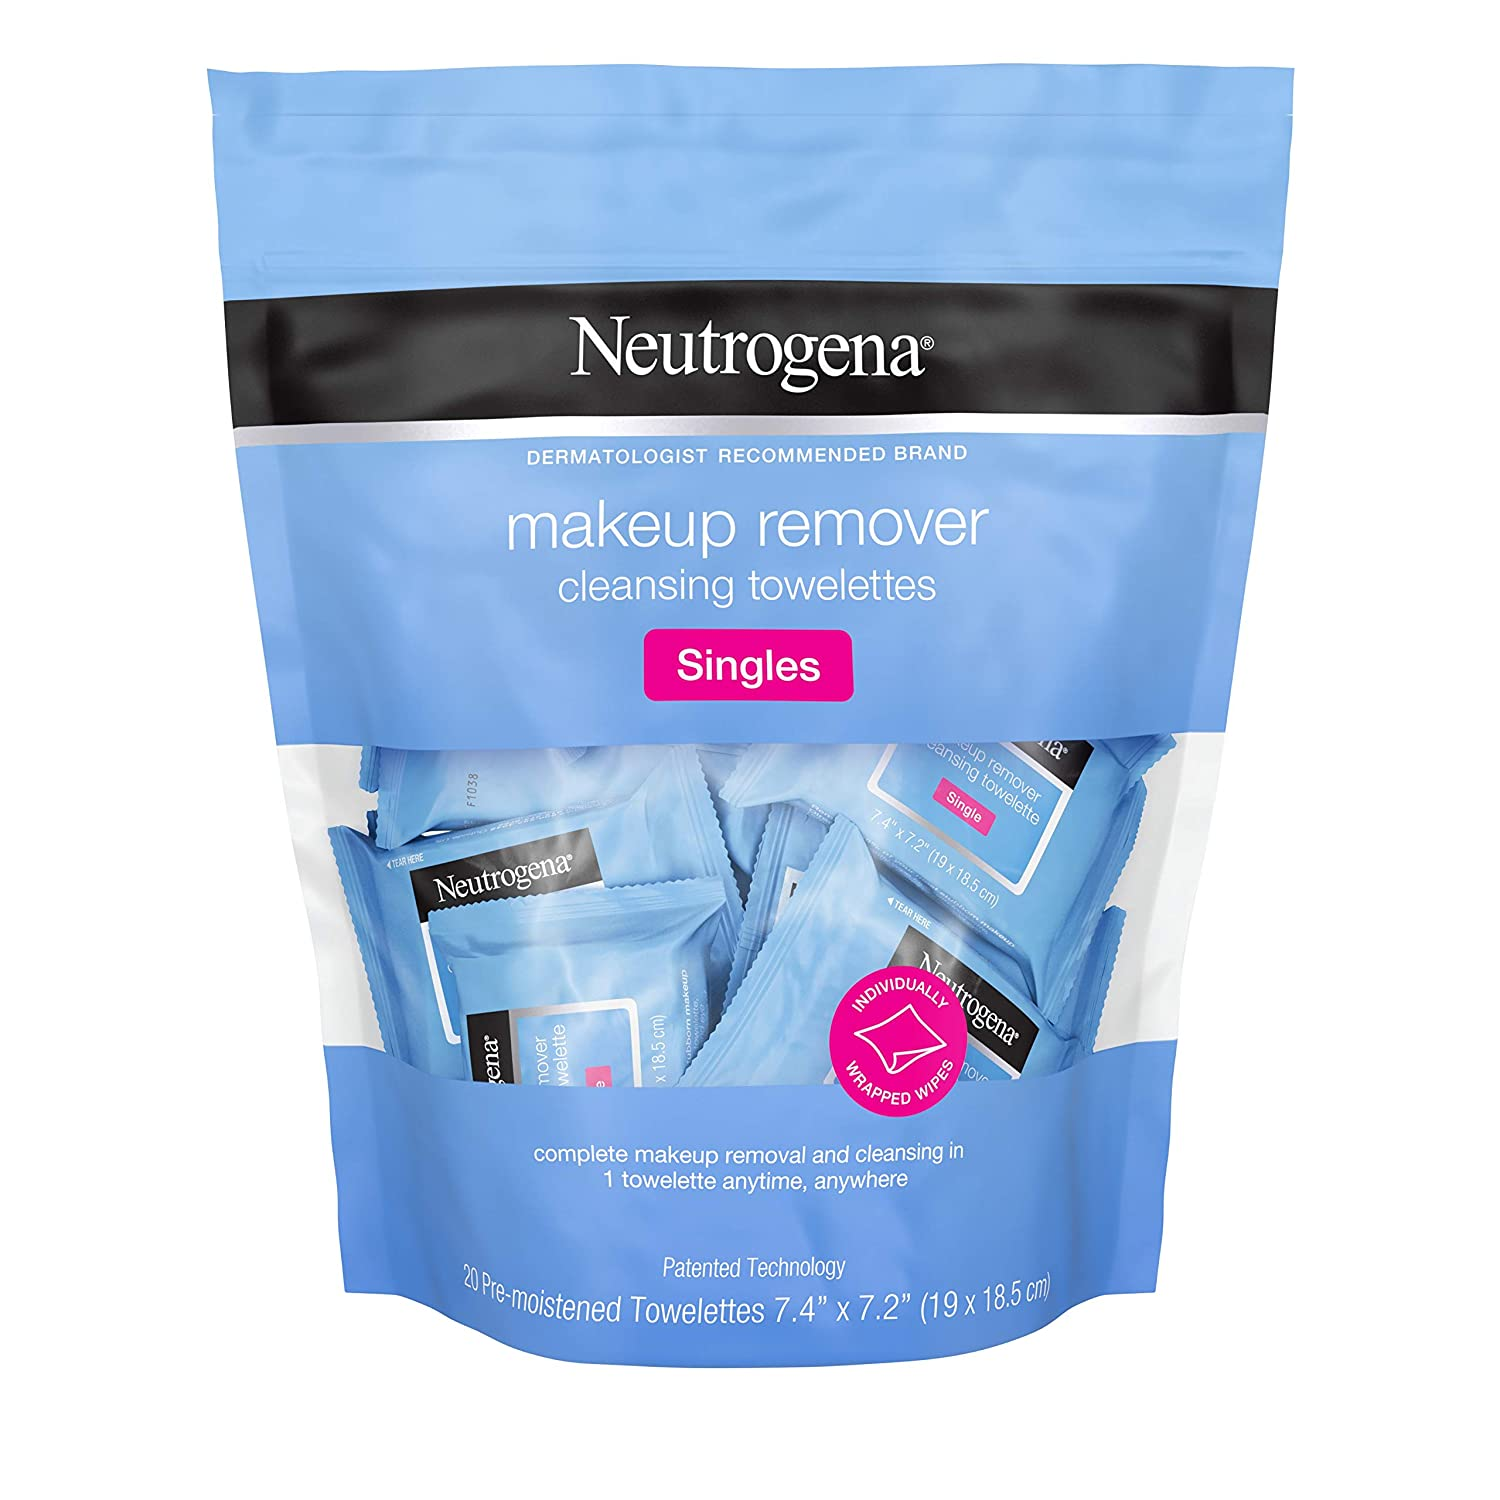 Neutrogena Makeup Remover Cleansing Towelette Singles, Daily Face Wipes to Remove Dirt, Oil, Makeup & Waterproof Mascara, Individually Wrapped, 20 ct (Pack of 3)